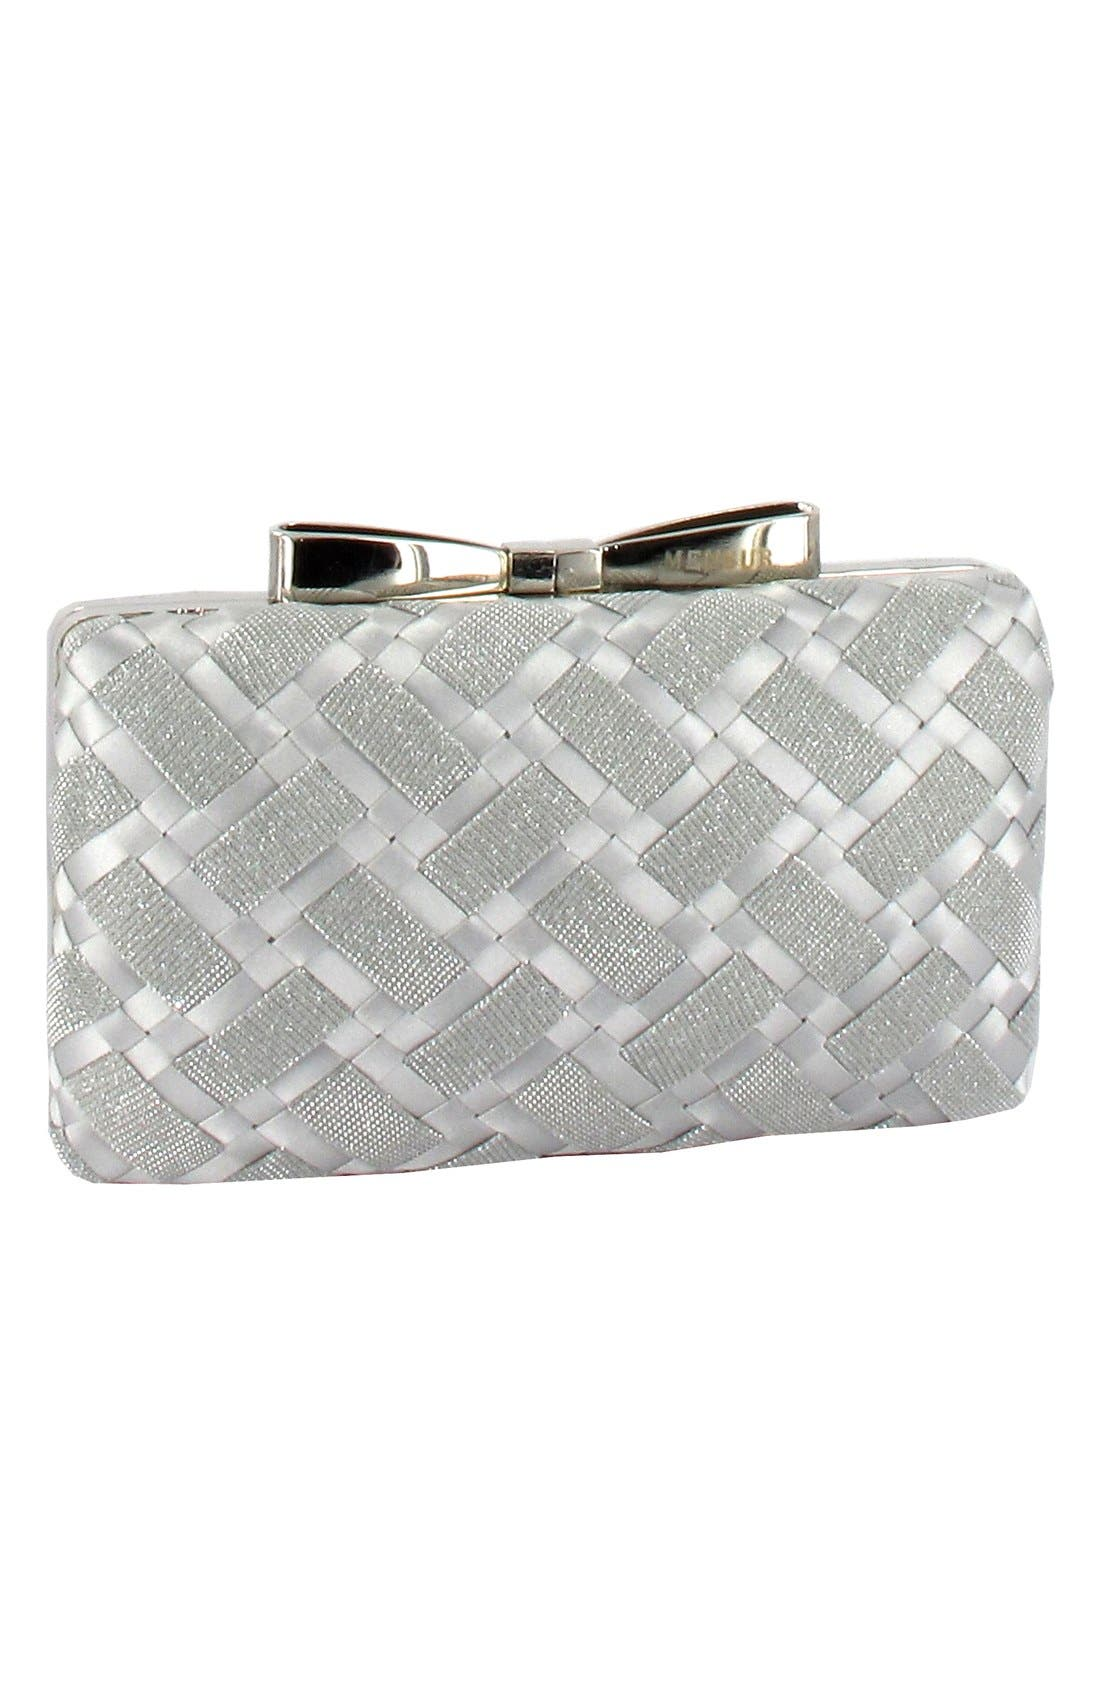 Alternate Image 3  - Menbur Woven Box Clutch with Bow Clasp